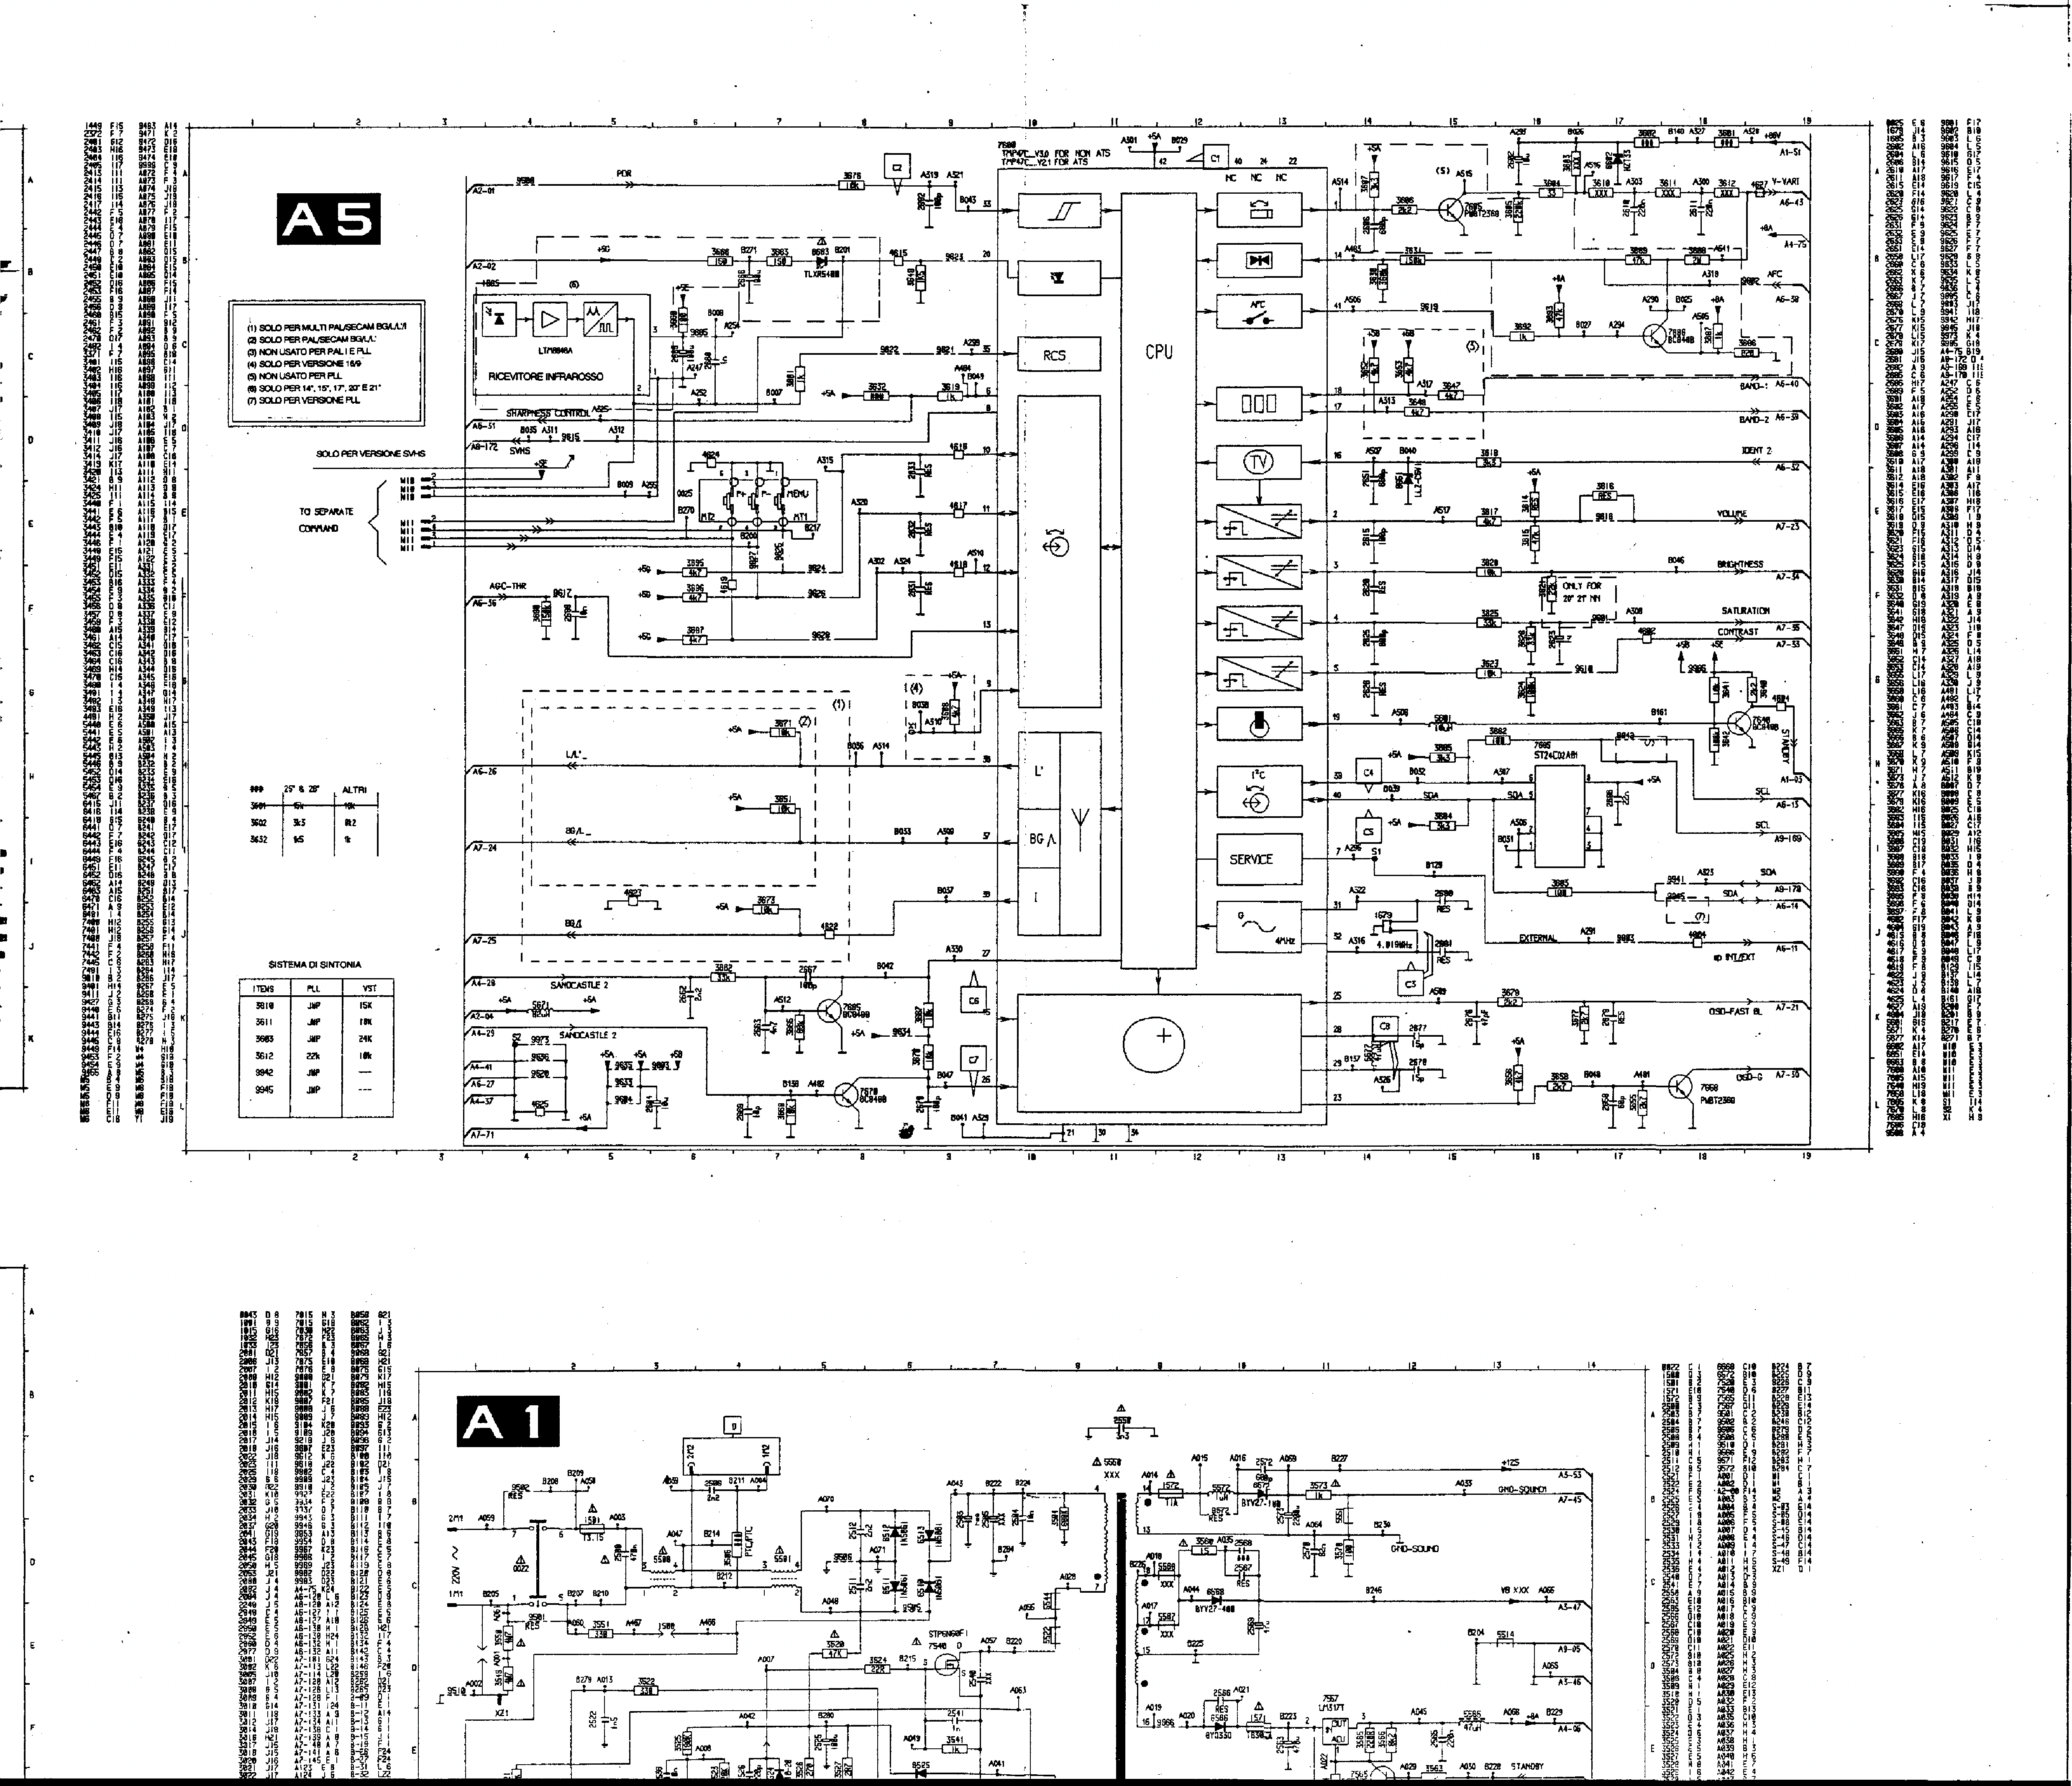 PHILIPS ANUBIS-A5 service manual (2nd page)